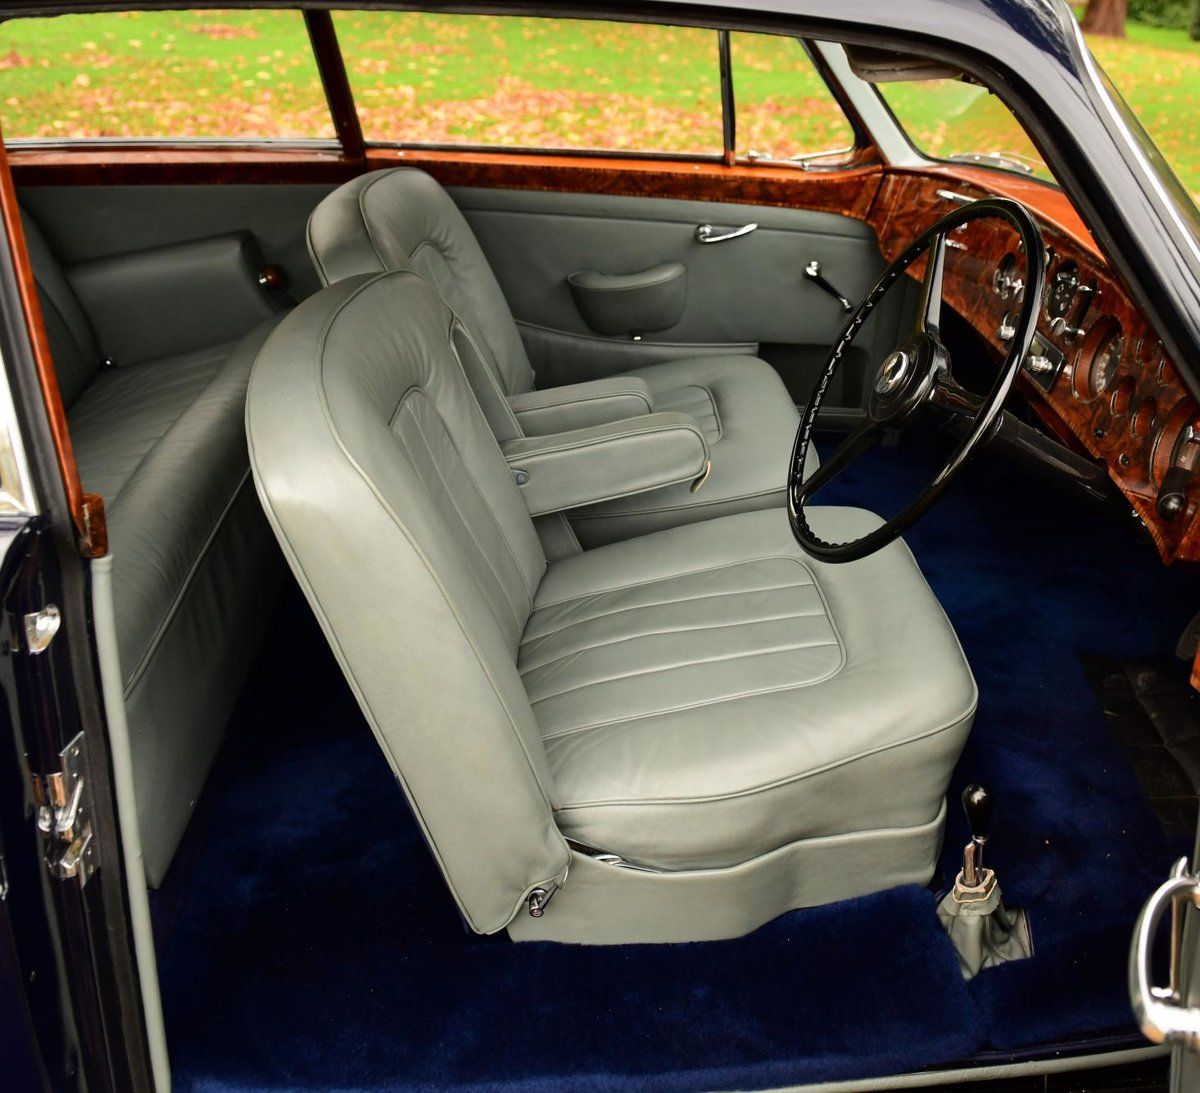 1957 BENTLEY S1 CONTINENTAL MANUAL FASTBACK BY H.J. MULLINER For Sale (picture 4 of 6)